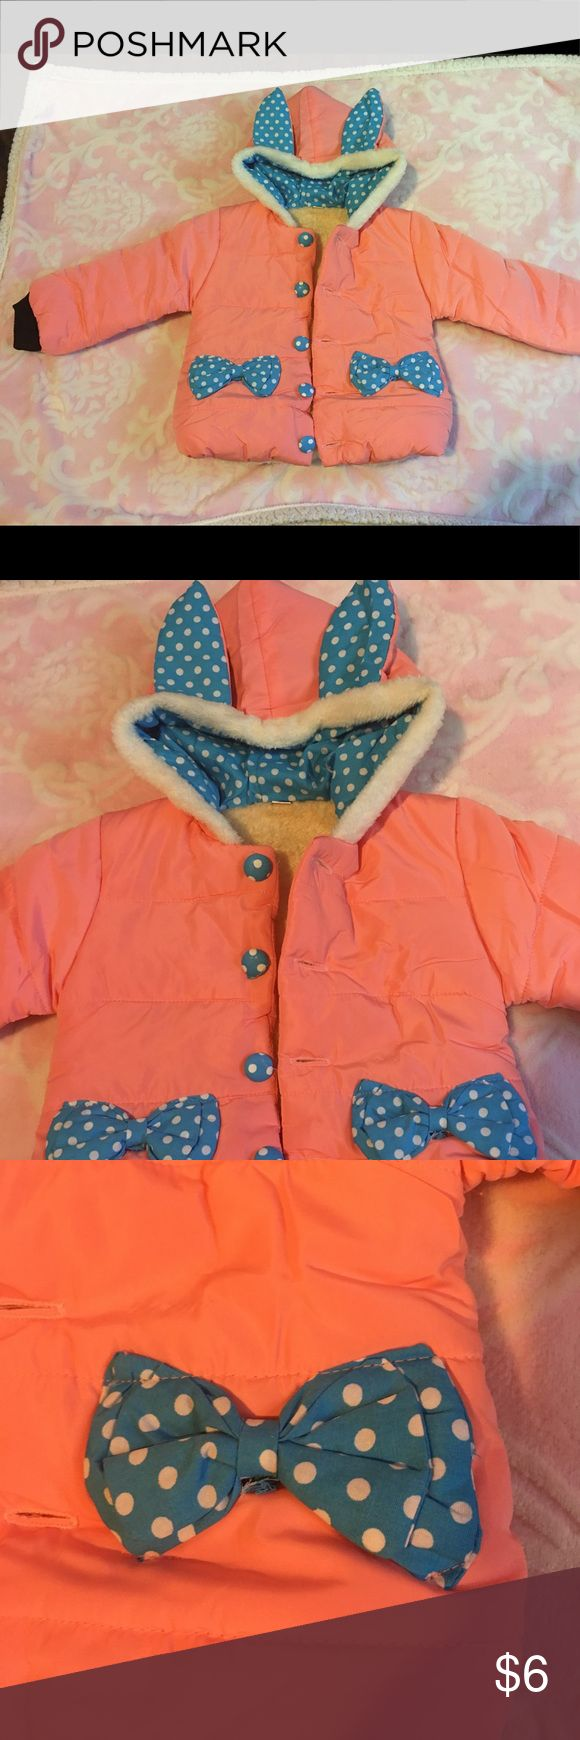 Baby girl bunny jacket🐰 NWOT! Baby girl jacket with polkadot rabbit ears! Ordered on amazon. No brand. Size Lg which is( 1 year old - 2 year old) stated on amazon website 🐰 Jackets & Coats